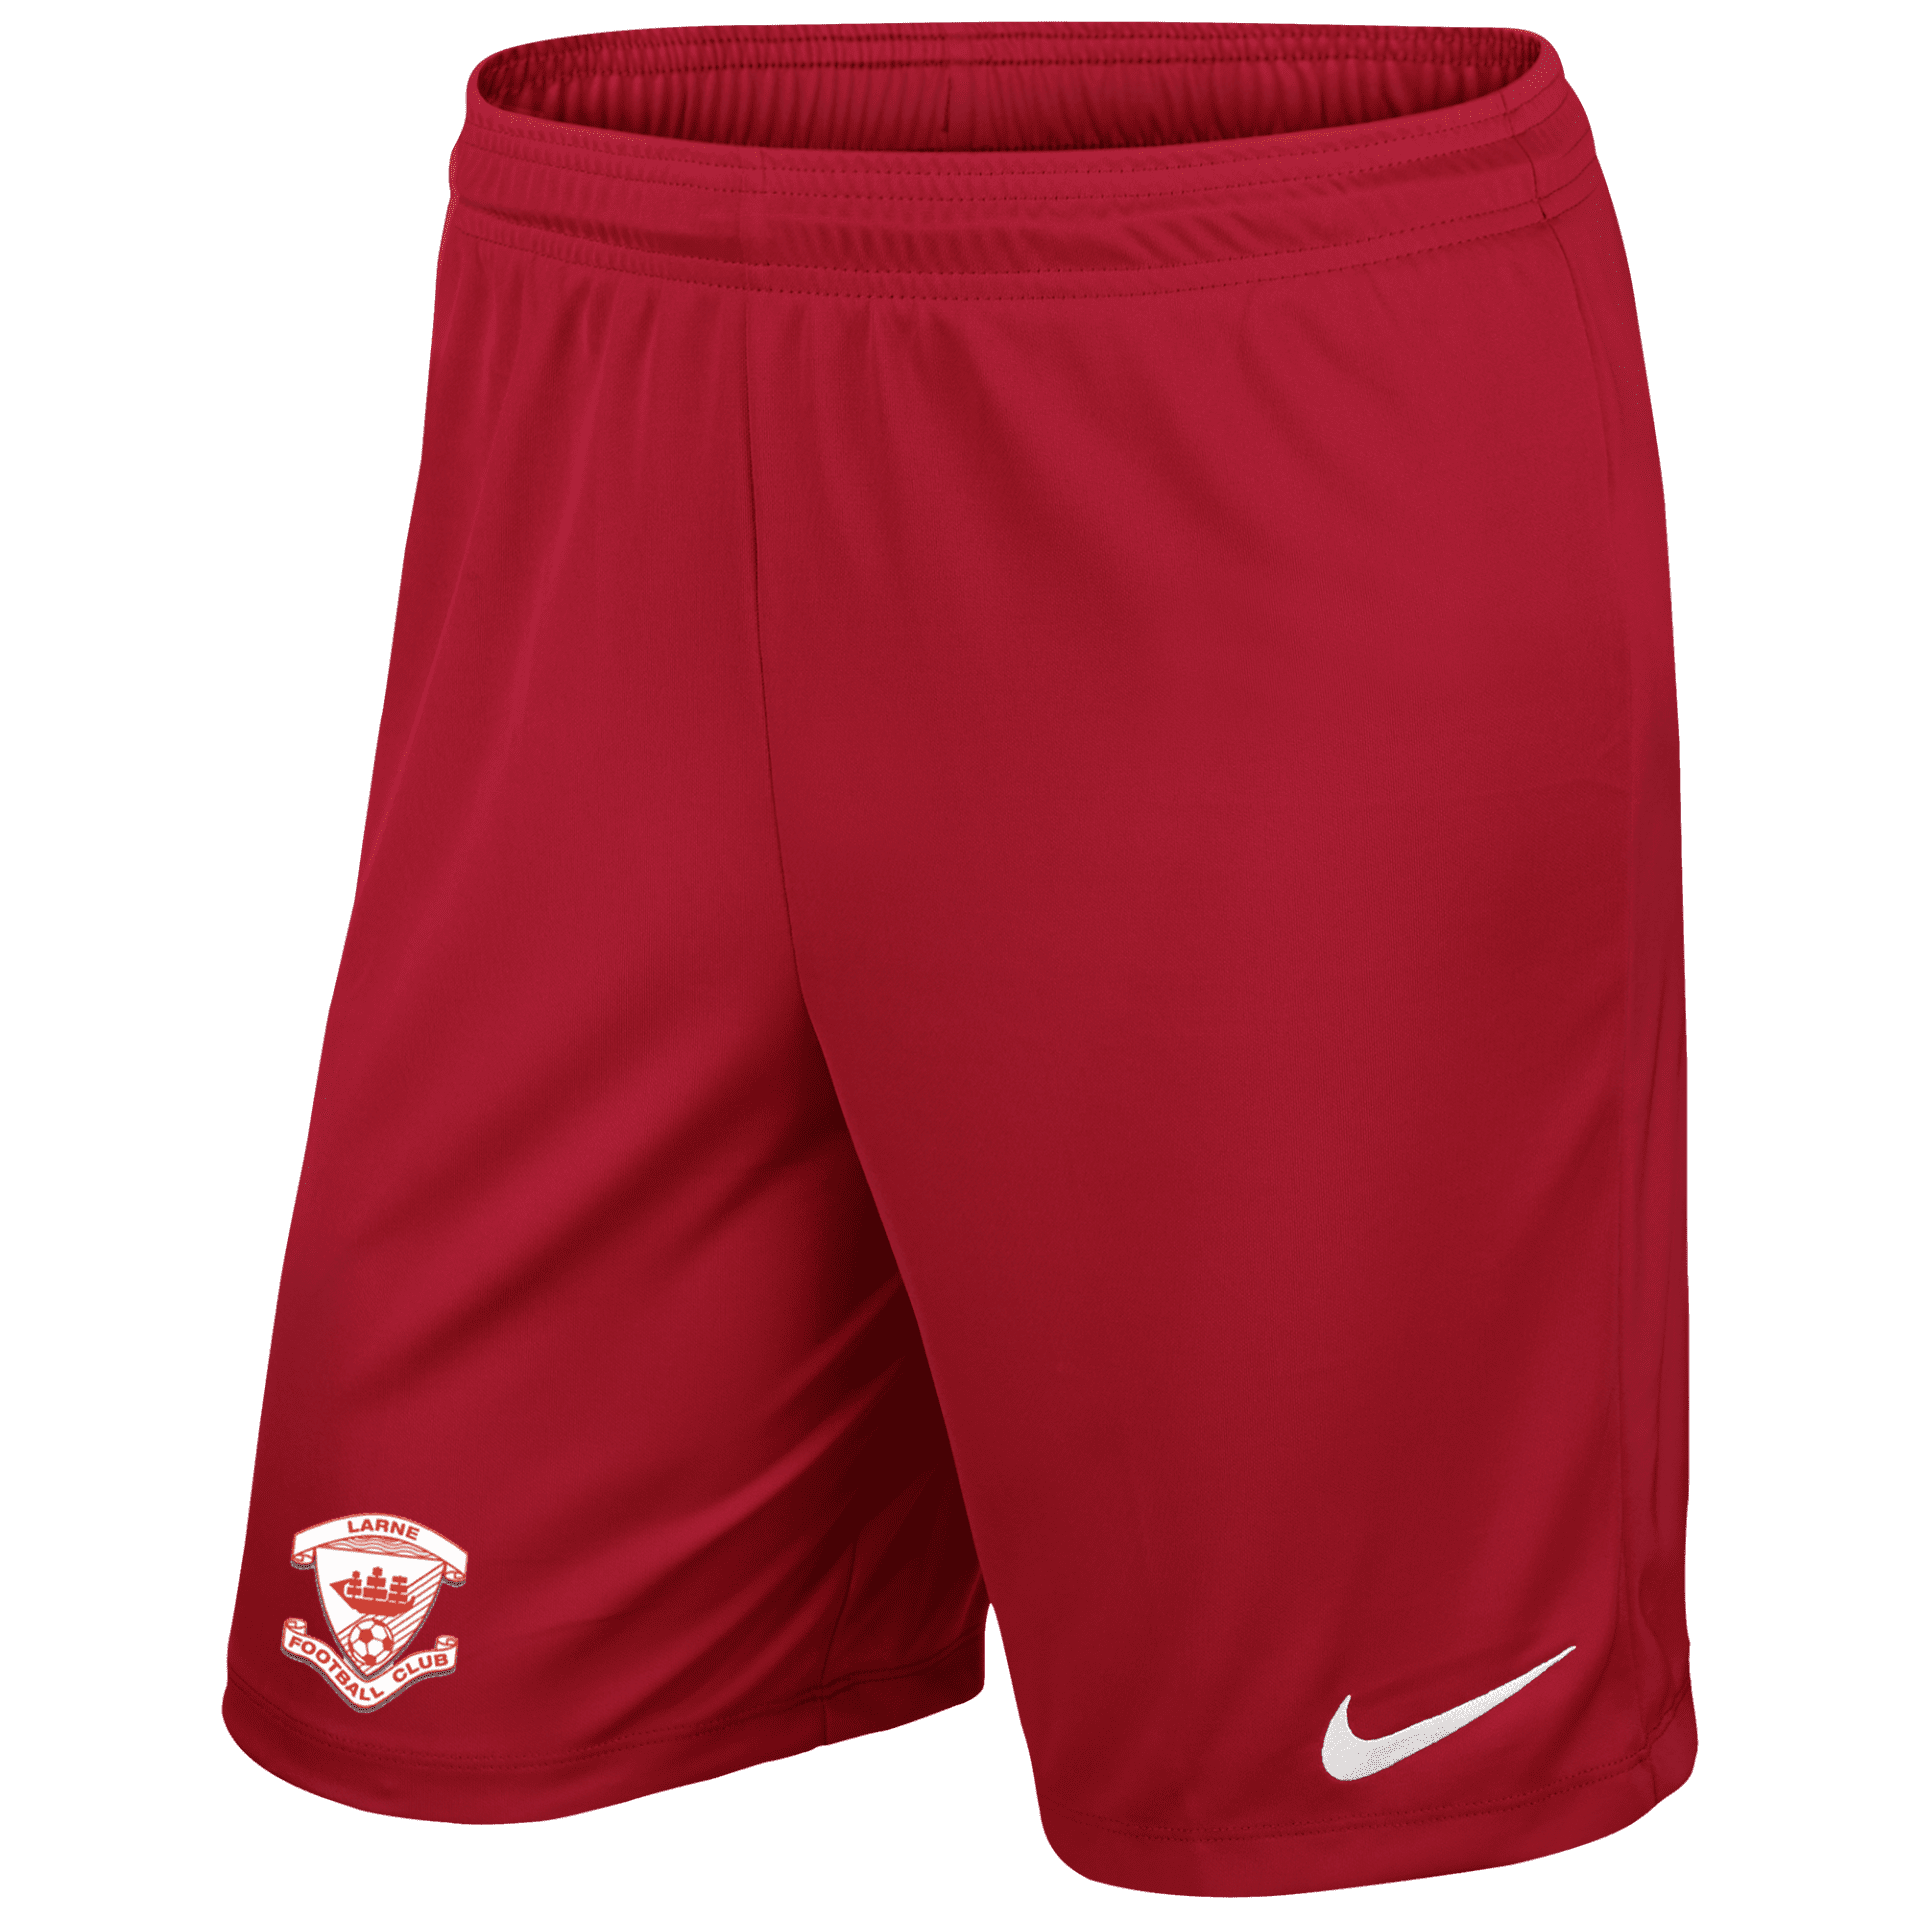 larne youth park shorts 34889 1 p